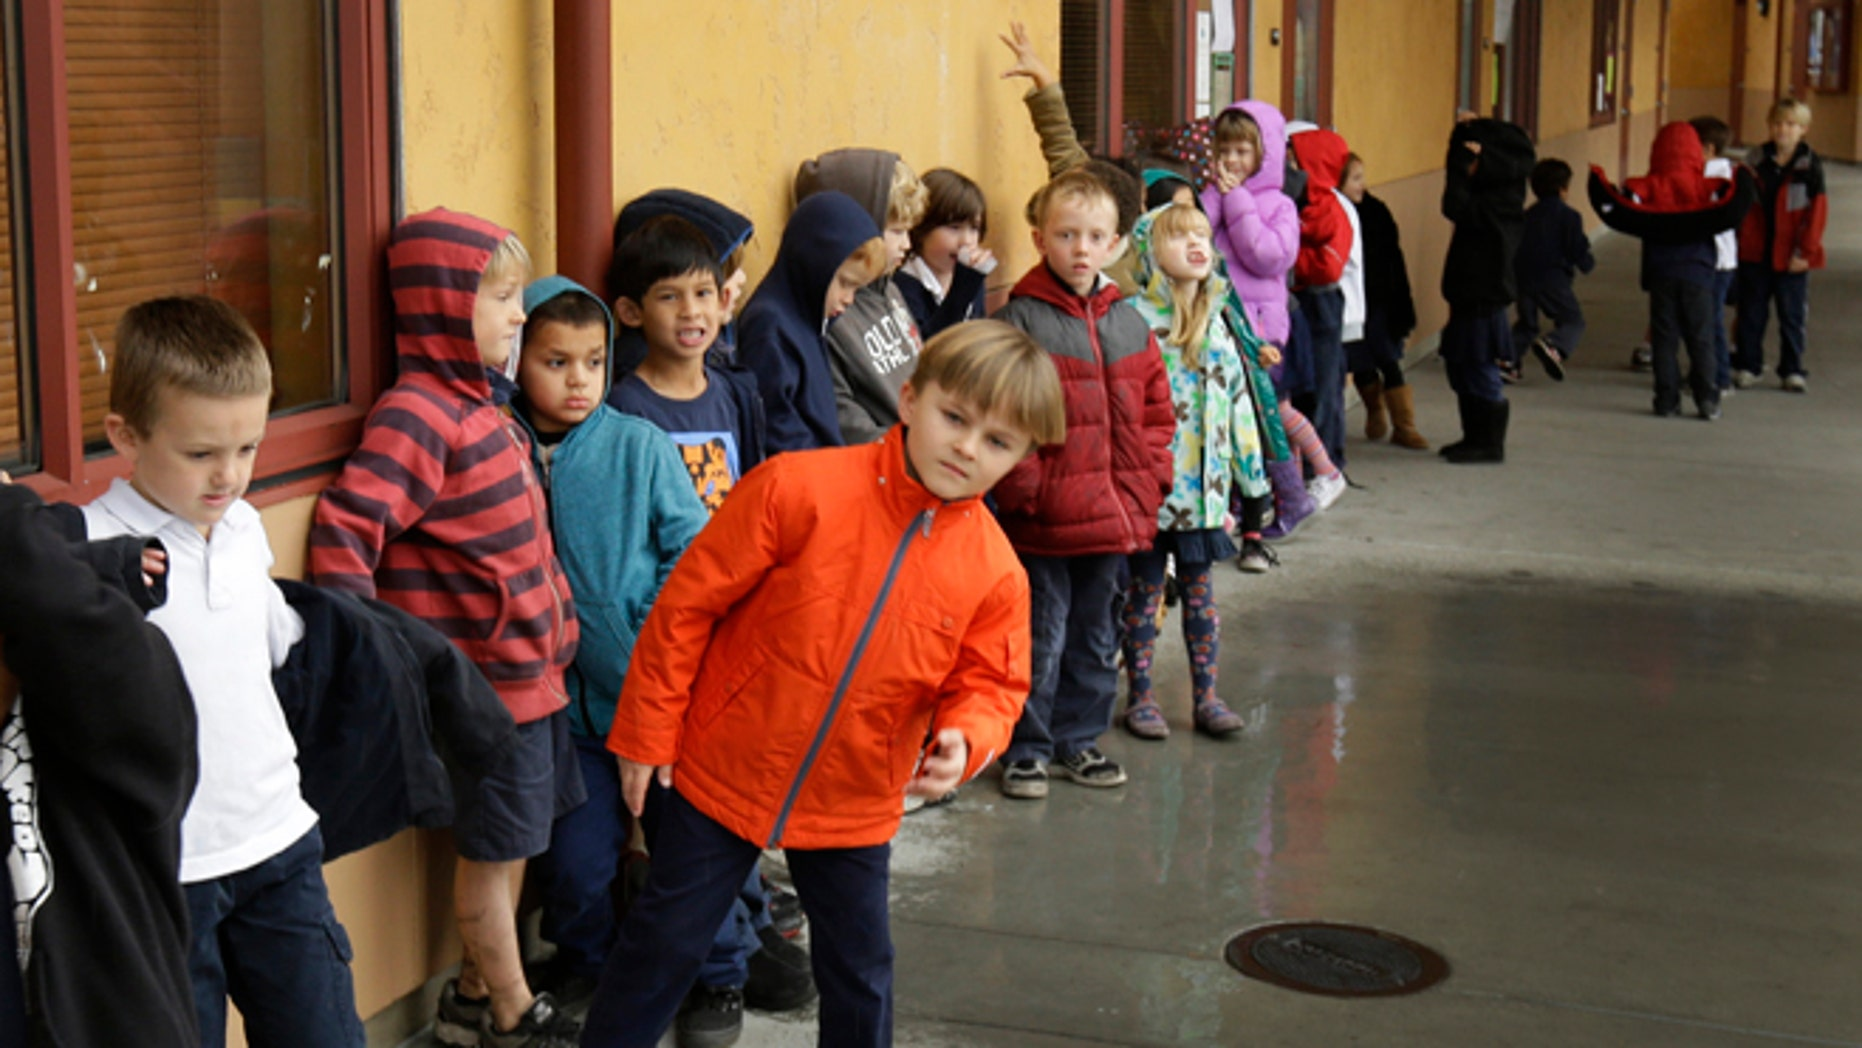 Jan. 24, 2013: A first grade class of 30 children waits to enter a classroom at the Willow Glenn Elementary School in San Jose, Calif.